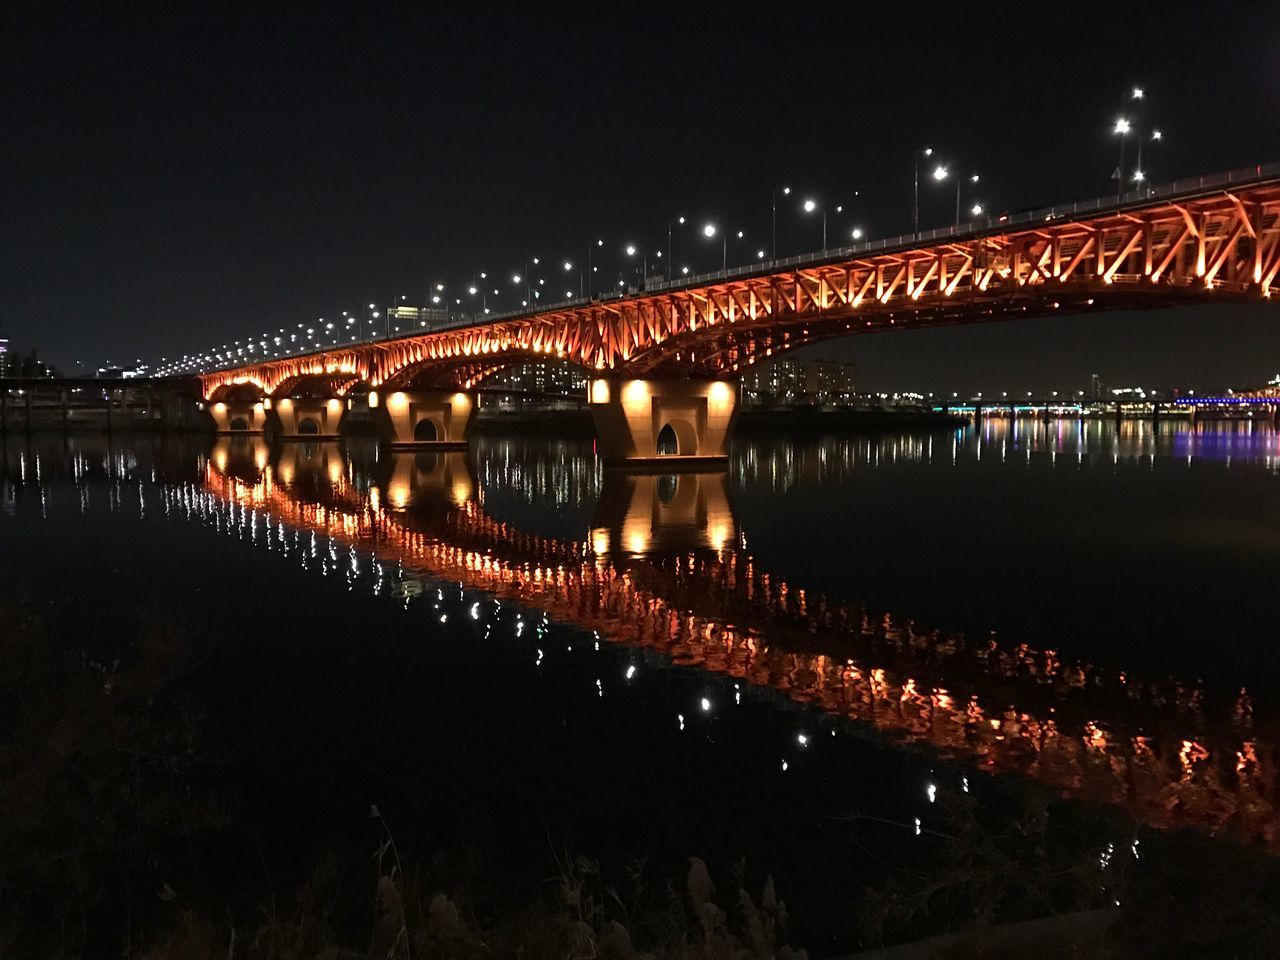 No Filter No Edit just IPhone7Plus Photography Hanriver Seoul, Korea Sungsoo Bridge 성수대교 한강 汉江 首尔